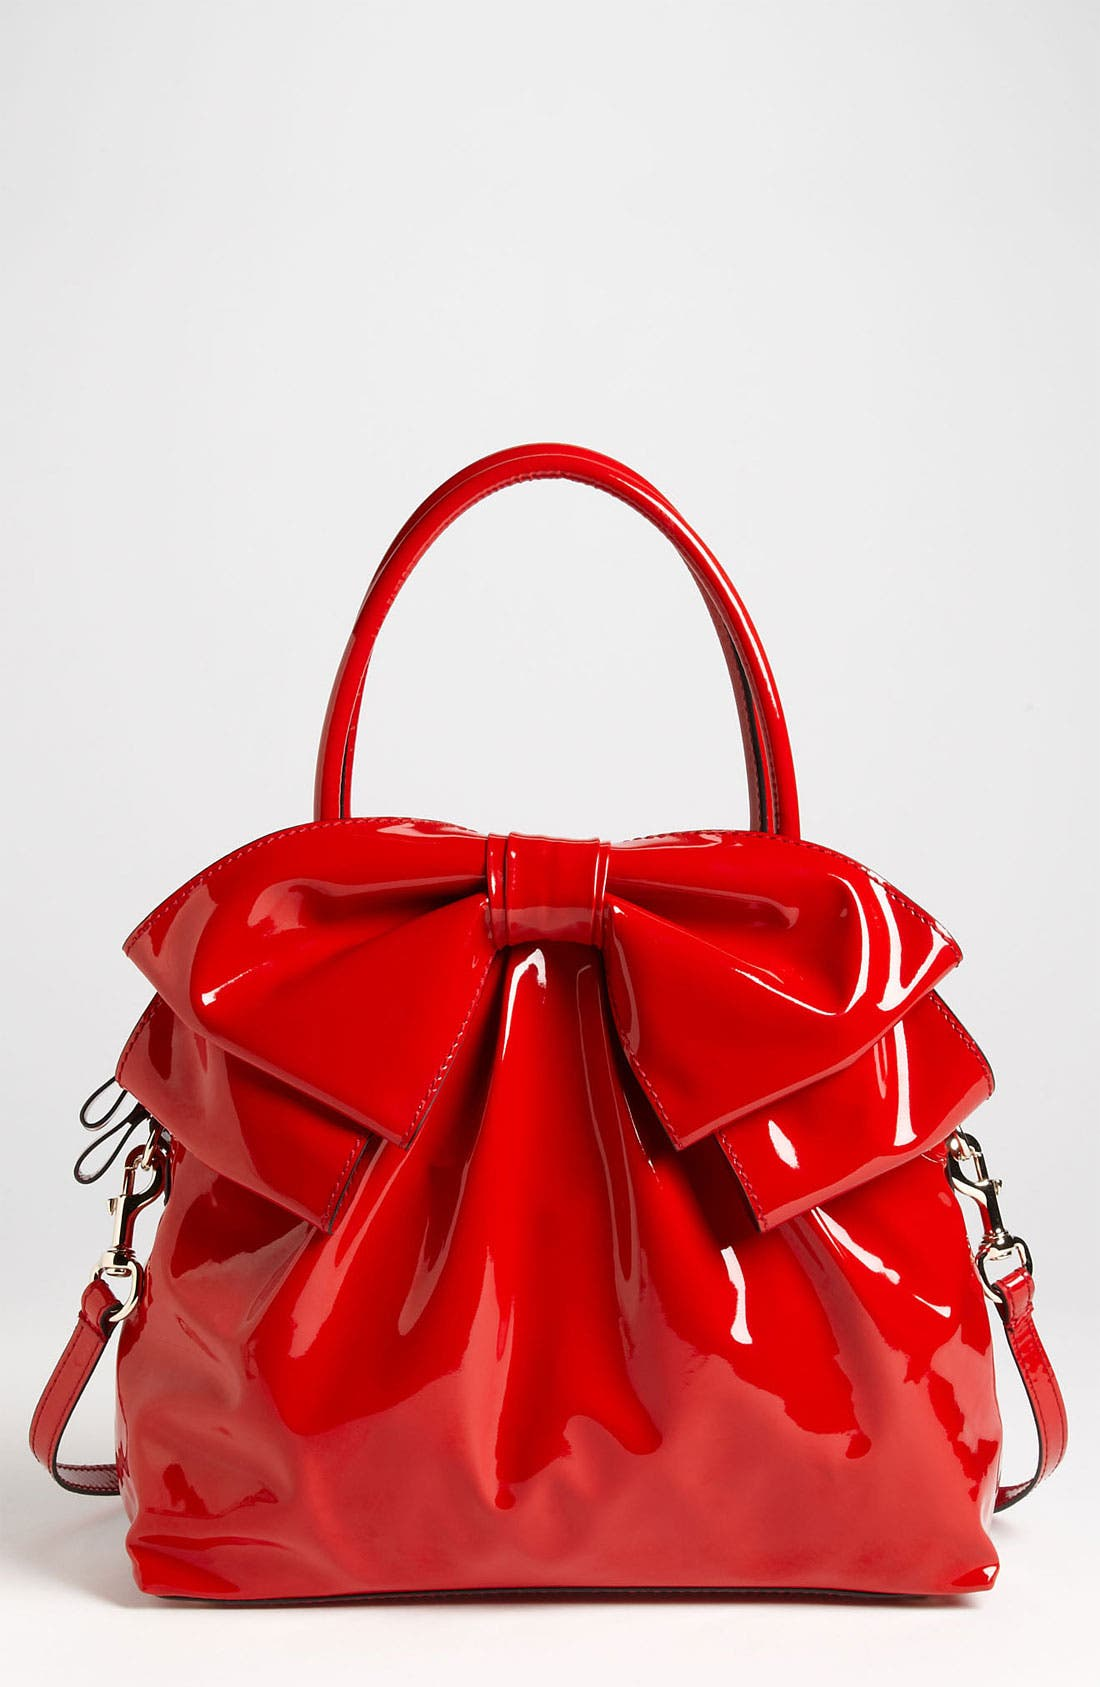 Main Image - Valentino 'Lacca Bow' Dome Satchel